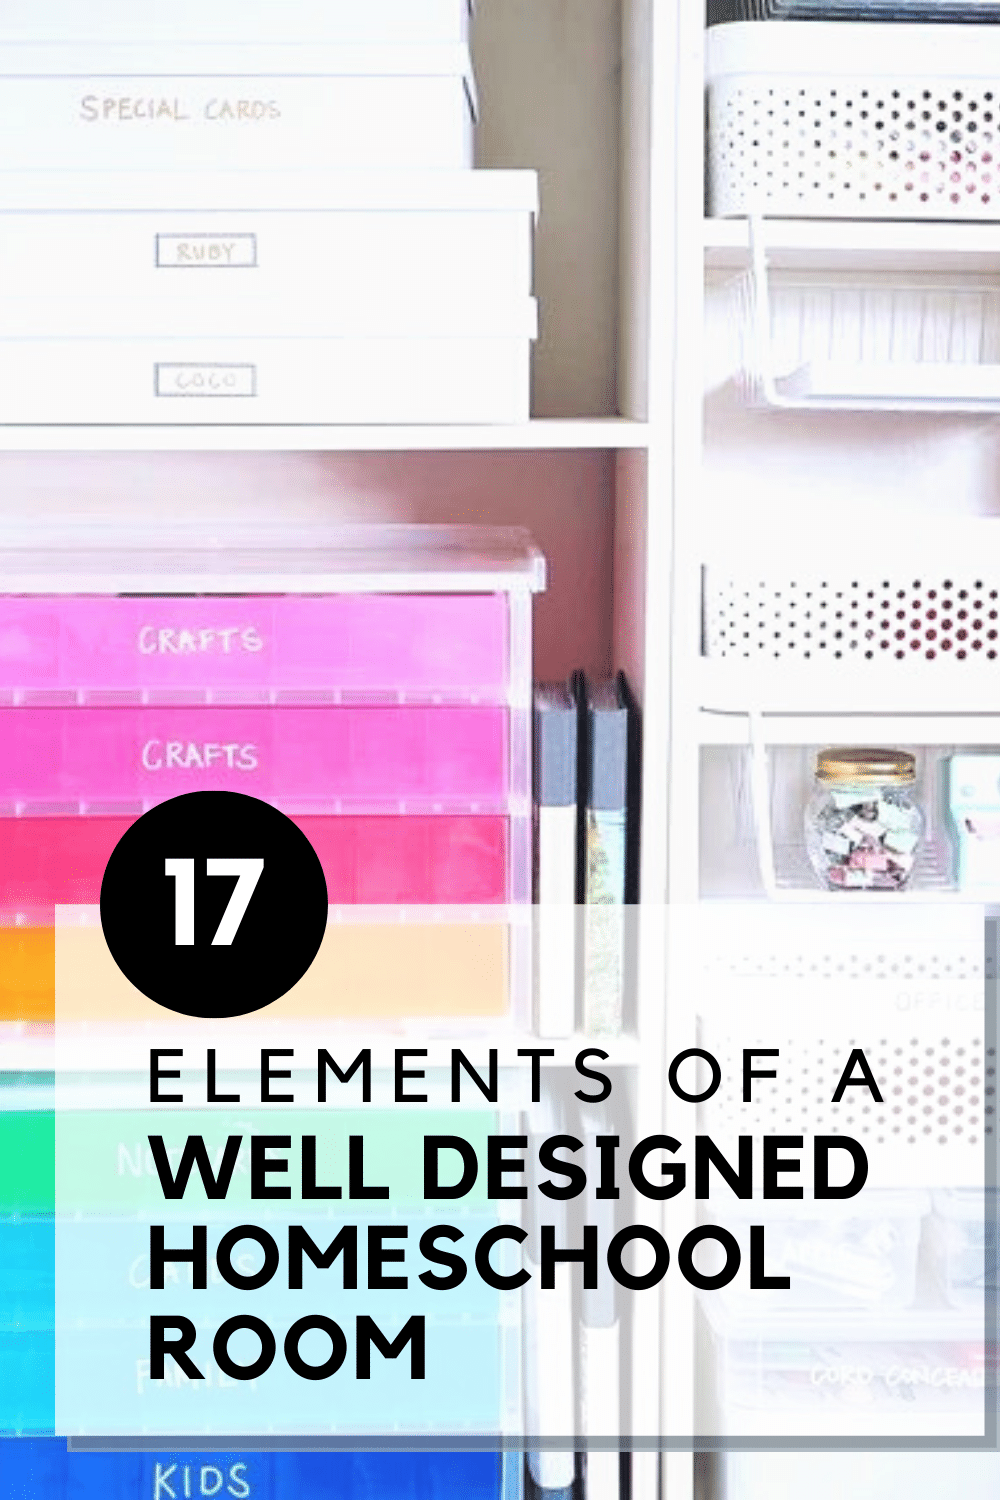 GUIDE TO A WELL DESIGNED HOMESCHOOL ROOM